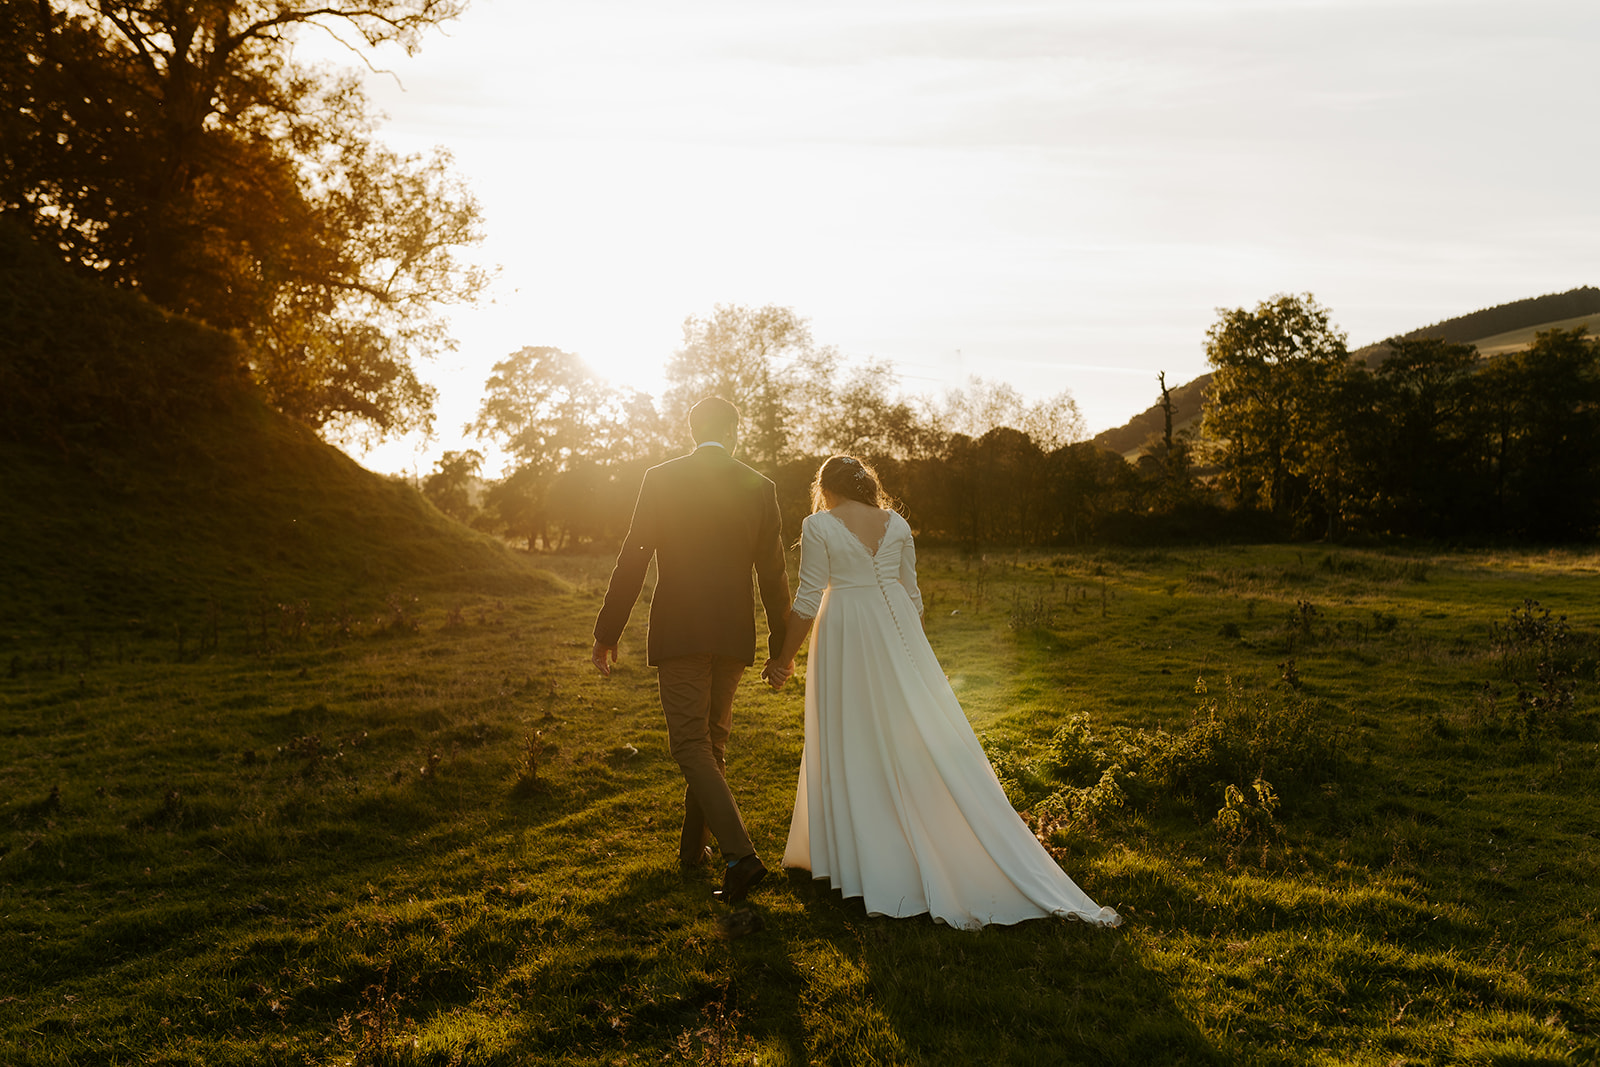 golden hour couples portraits at boho wild wedding in wales wilde lodge